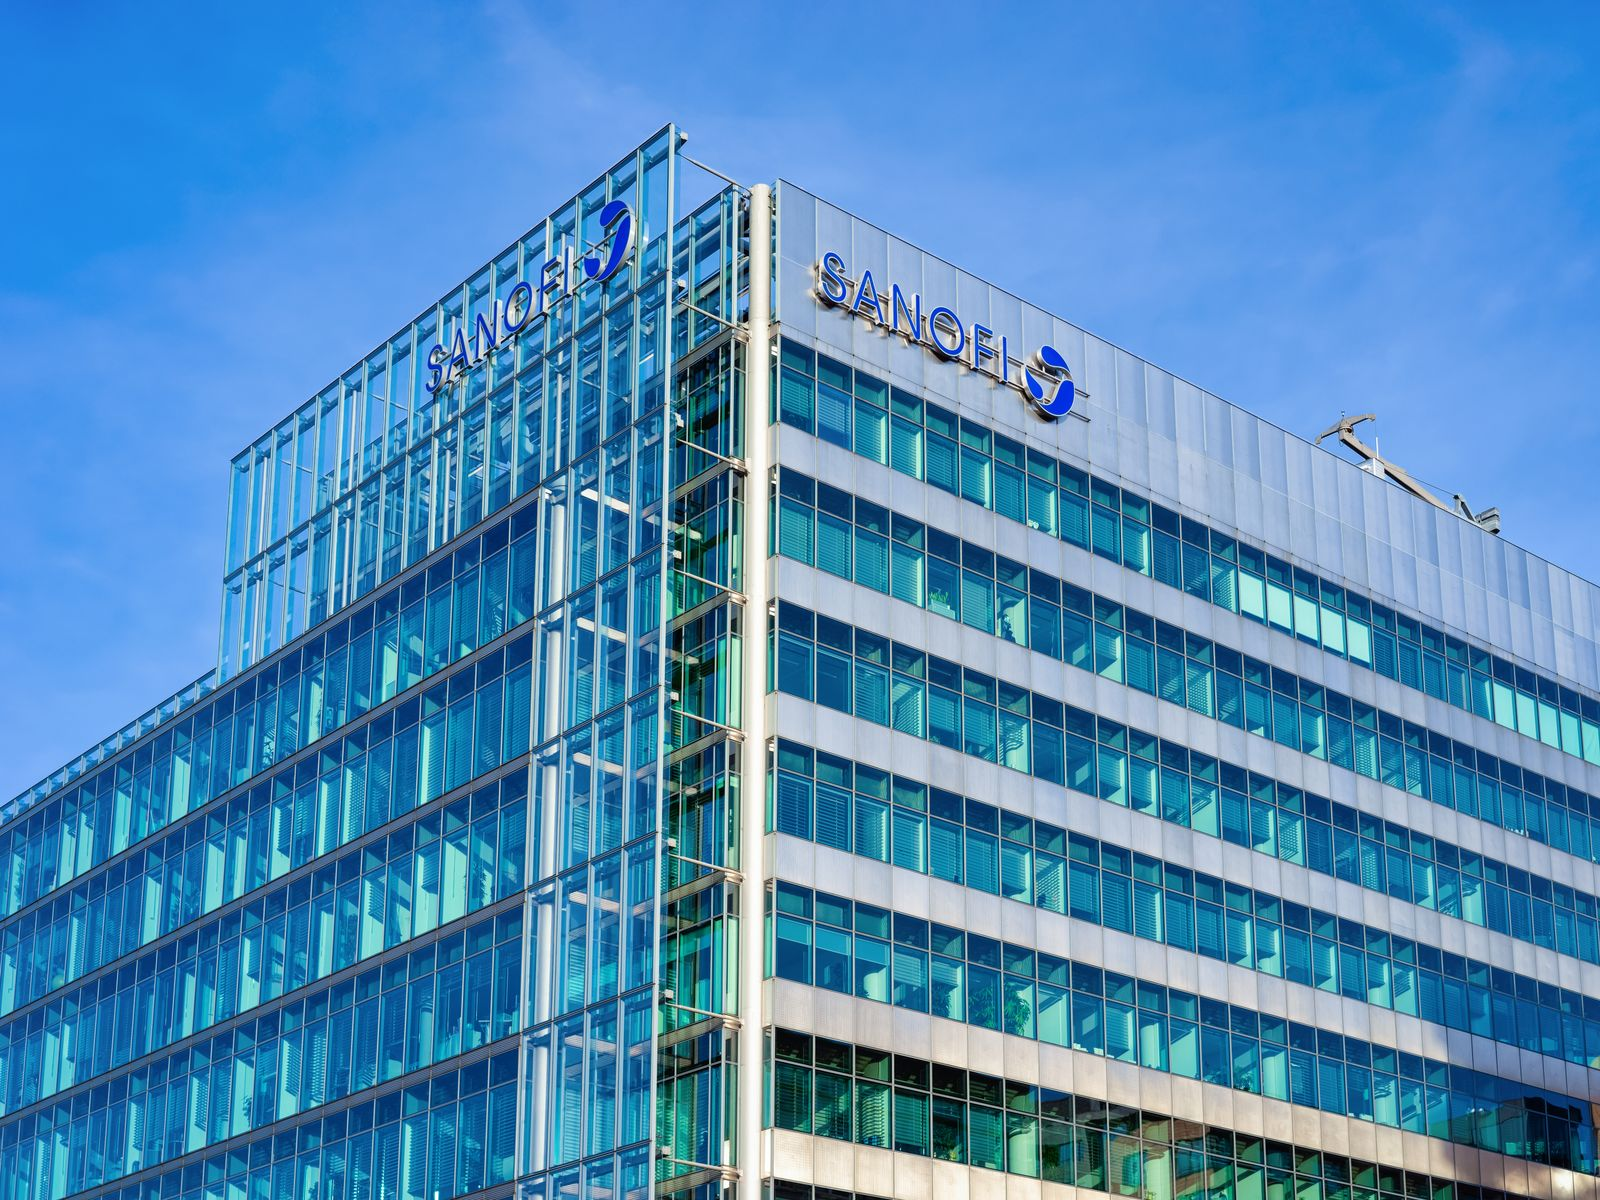 Blue glass European building architecture with Sanofi logo Berlin